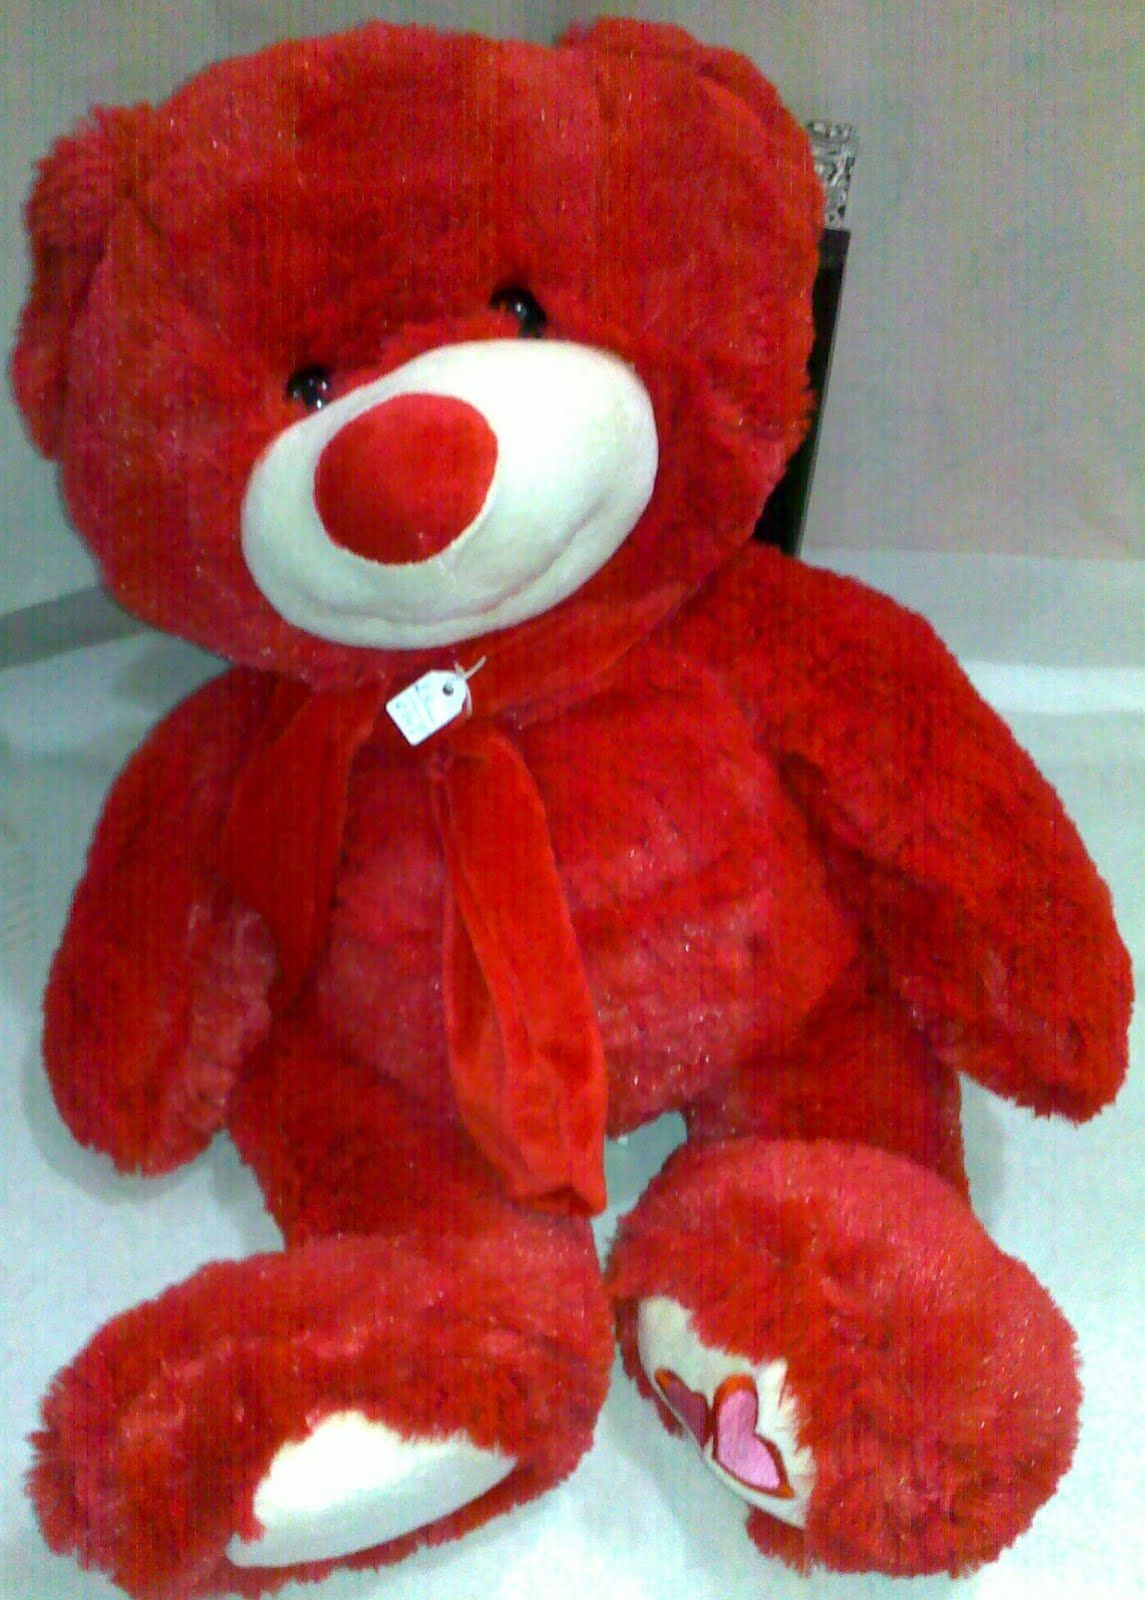 Big Teddy Bears For Valentines Day Homemade Valentines Gift Valentines Day Funny Big Valentine Cards